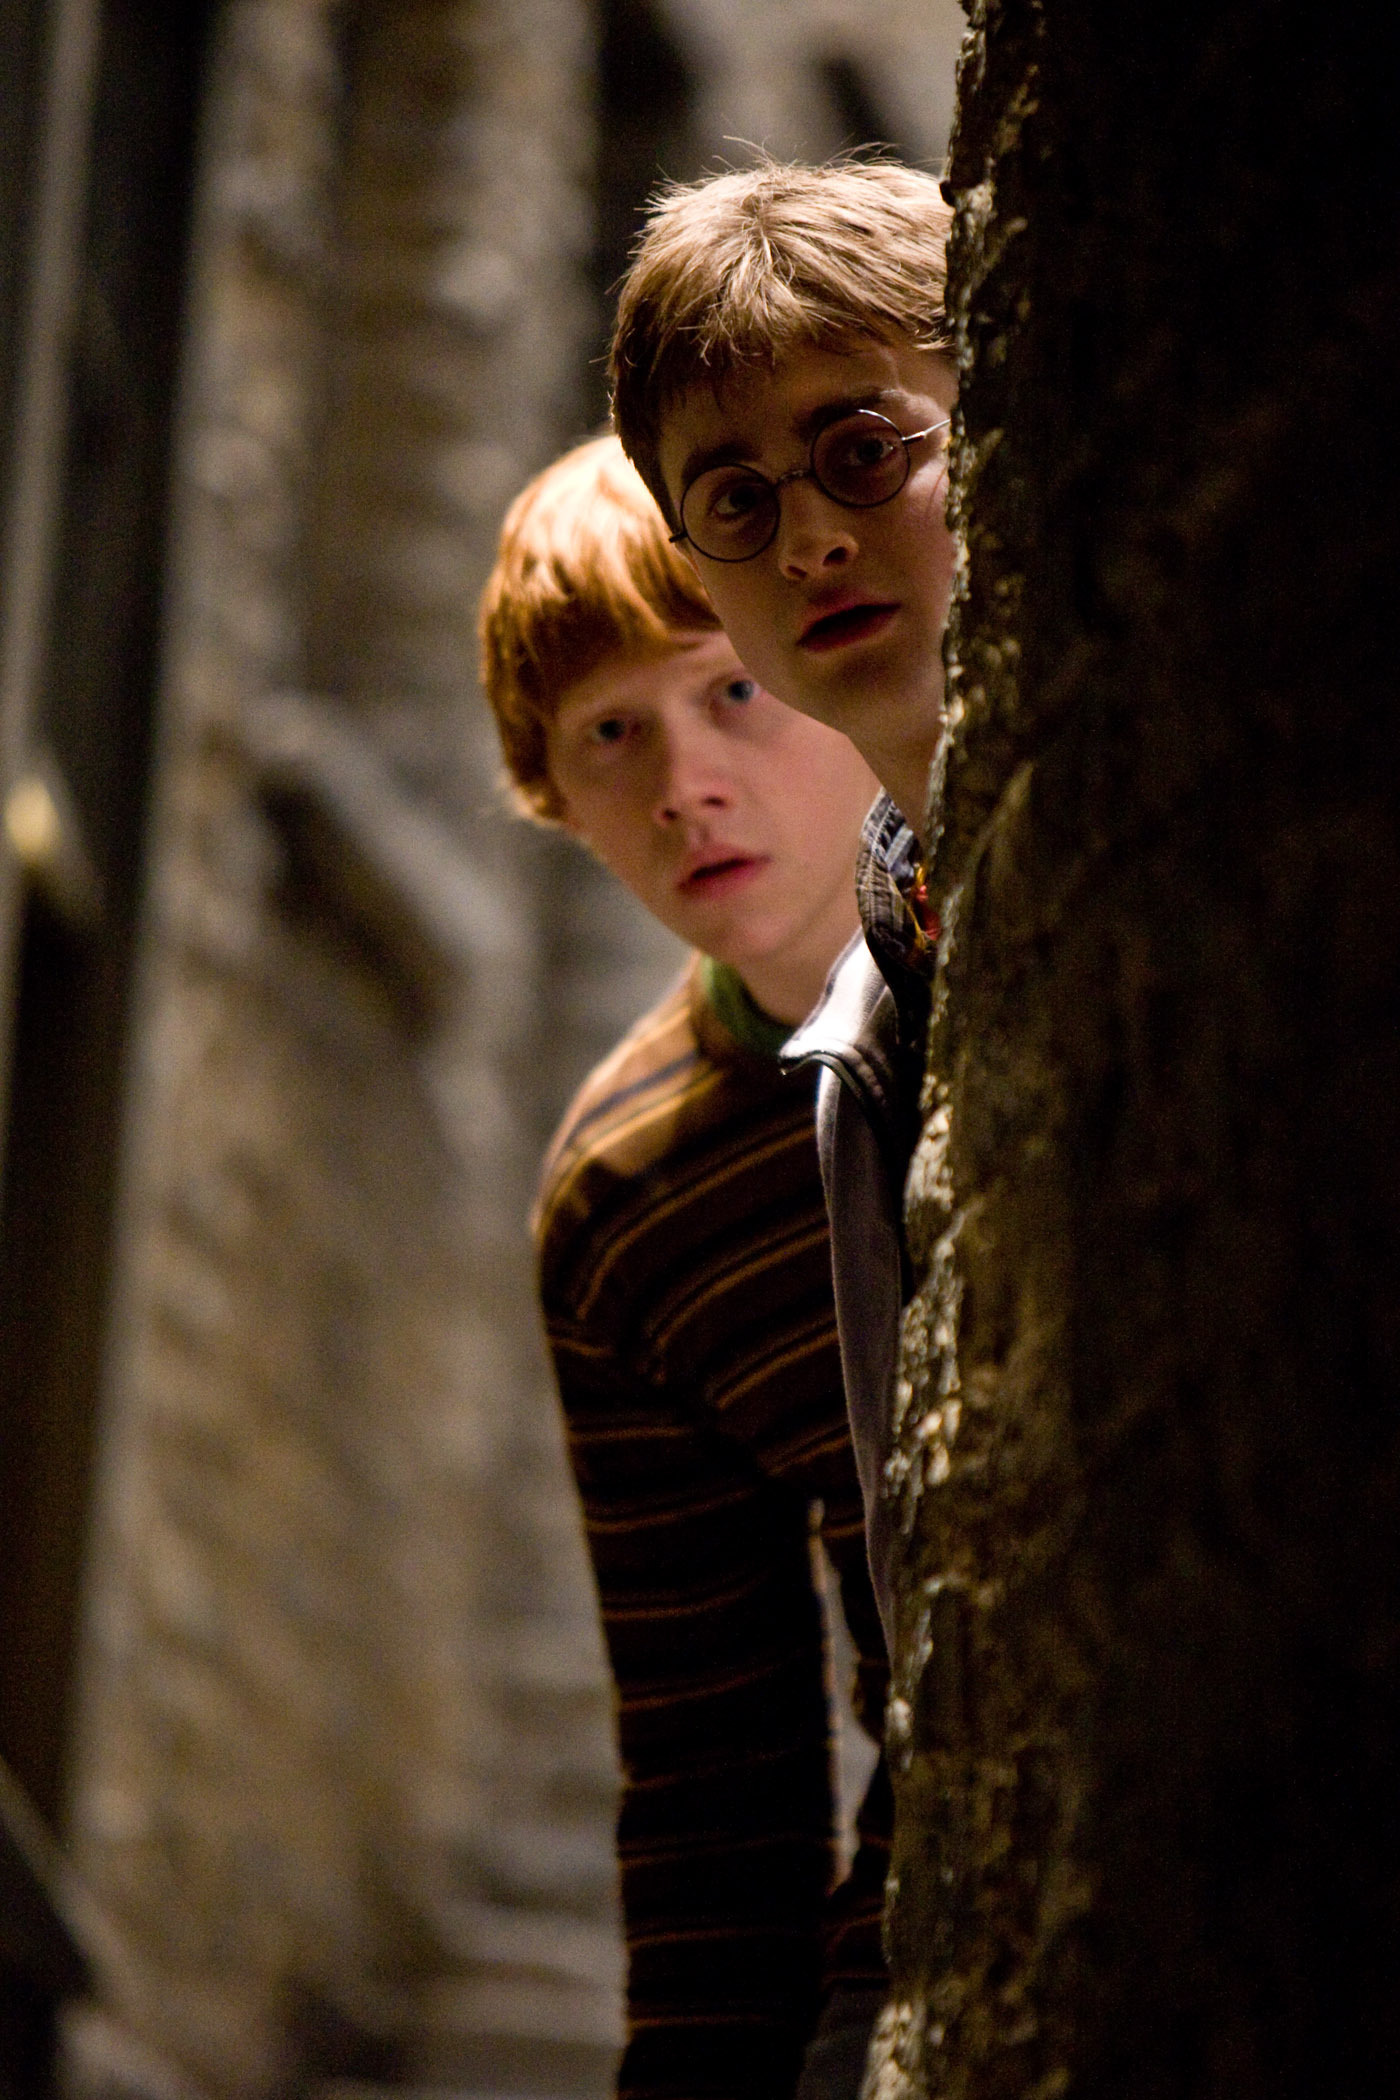 Harry and ron harry potter photo 3309053 fanpop - Rone harry potter ...